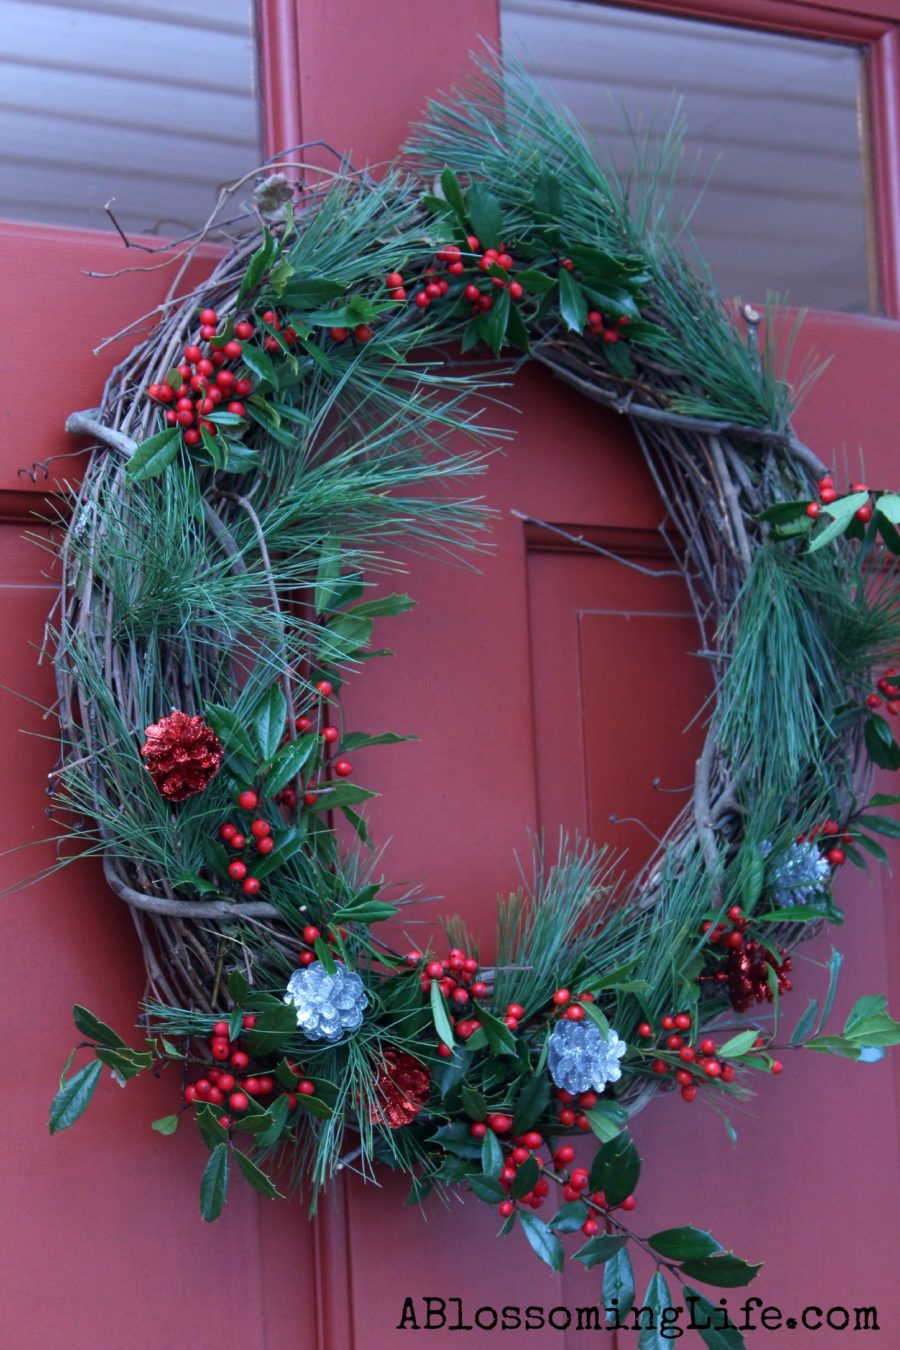 DIY Christmas Wreath with evergreens, holly, and sparkly pinecones hanging on a red door.